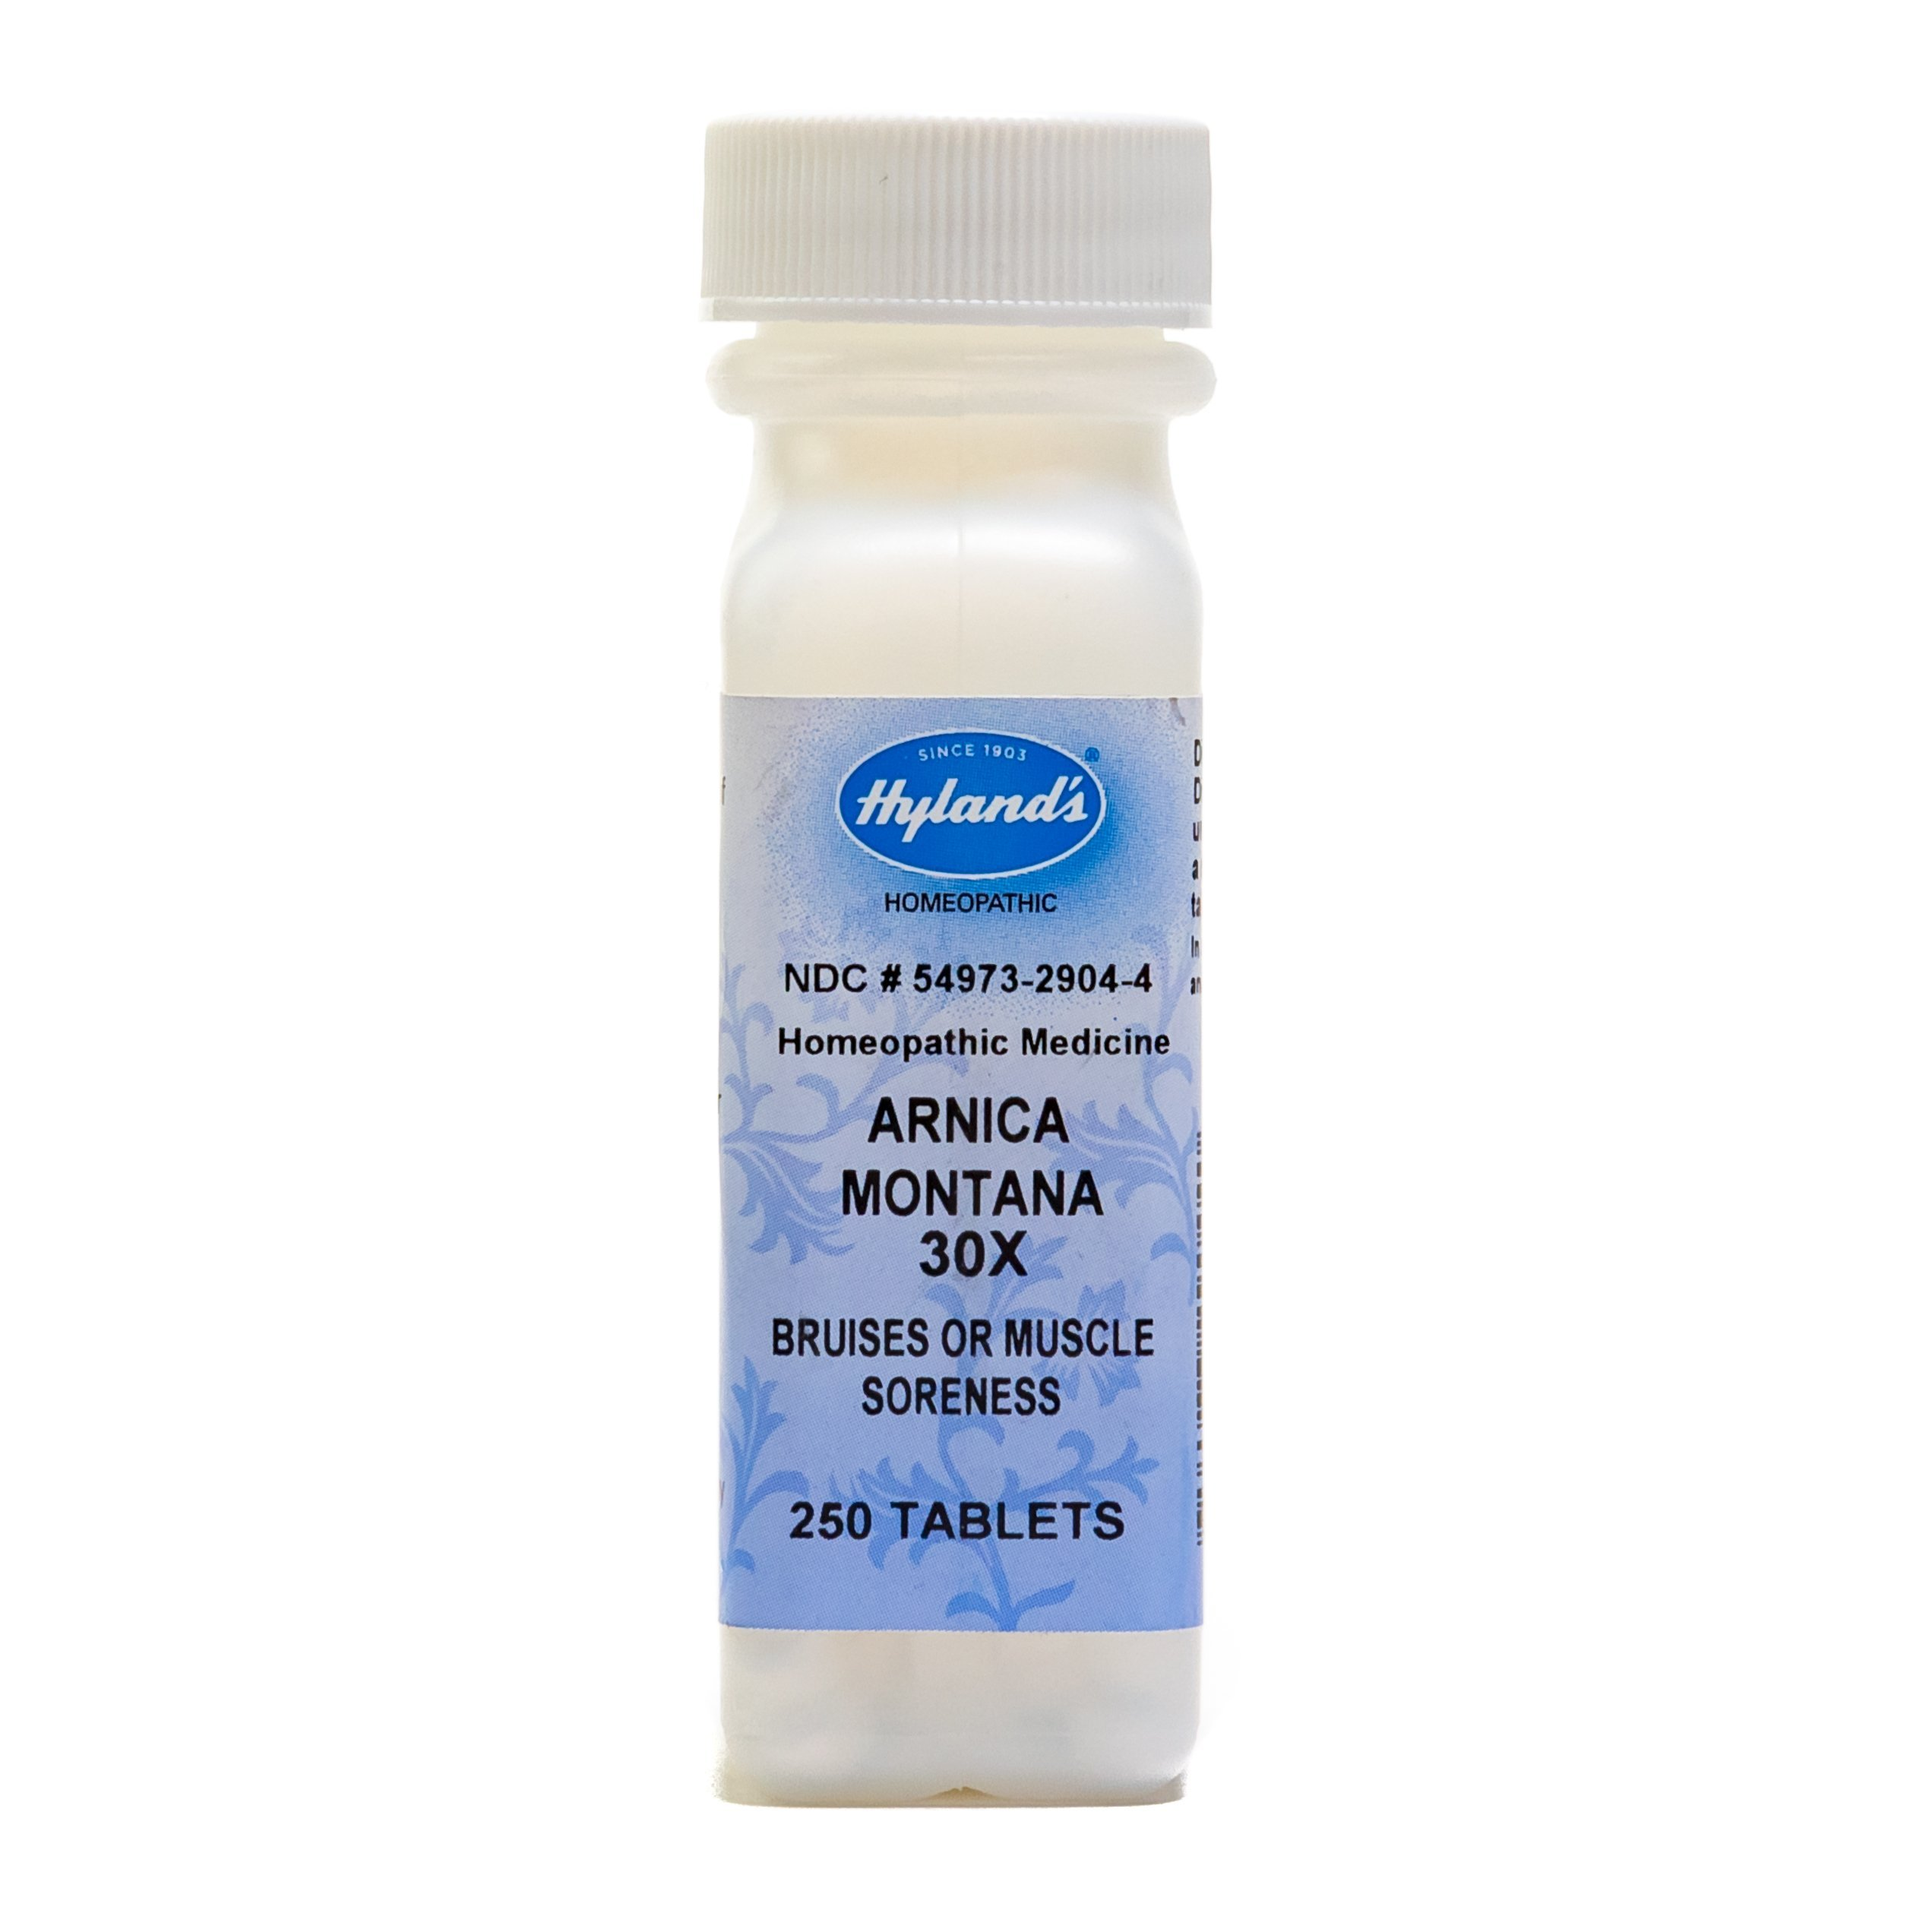 Hyland's Homeopathic Arnica Montana 30X Tablets, 250 Count